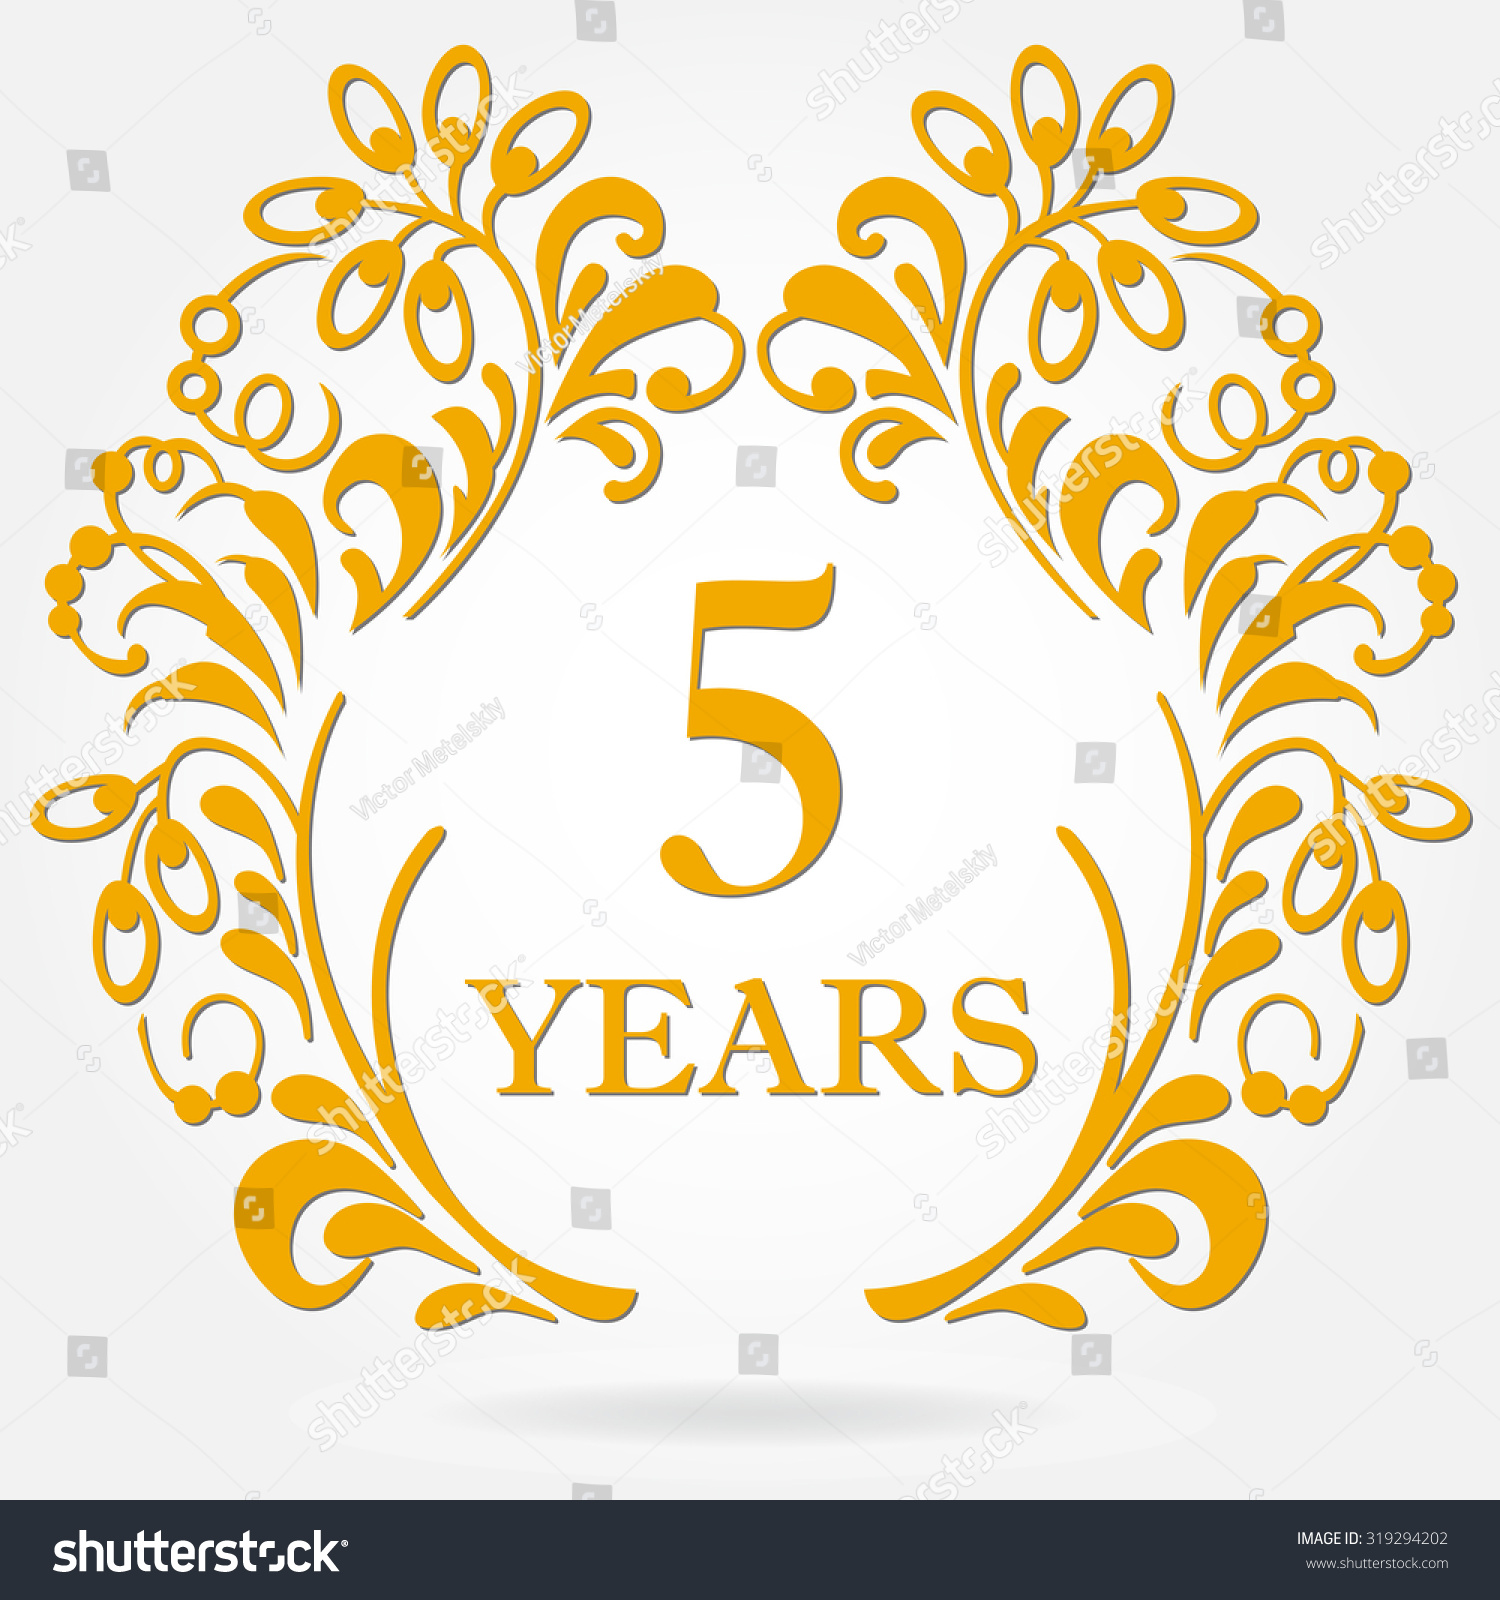 5 Years Anniversary Icon In Ornate Frame With Floral ...